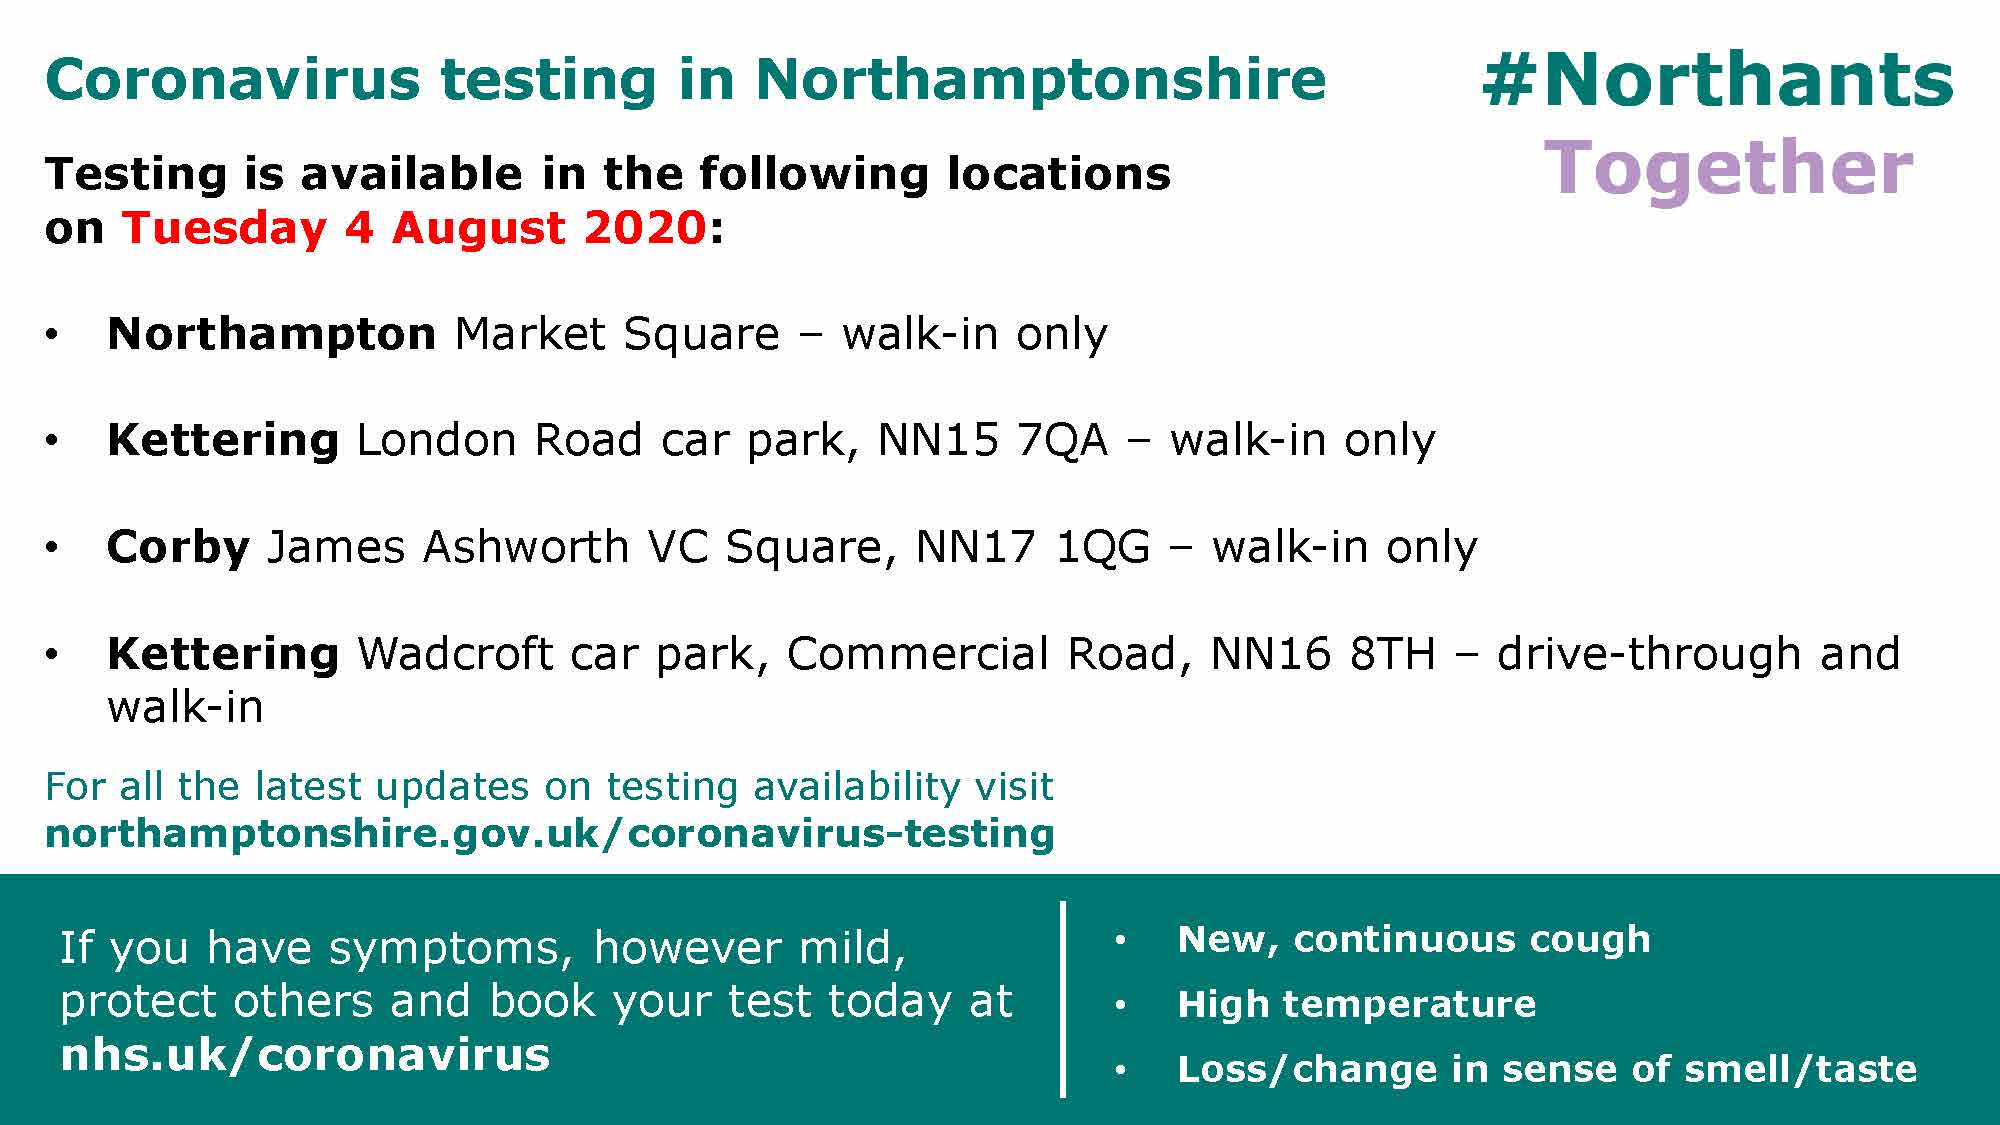 COVID-19 testing availability in Northamptonshire 4th August